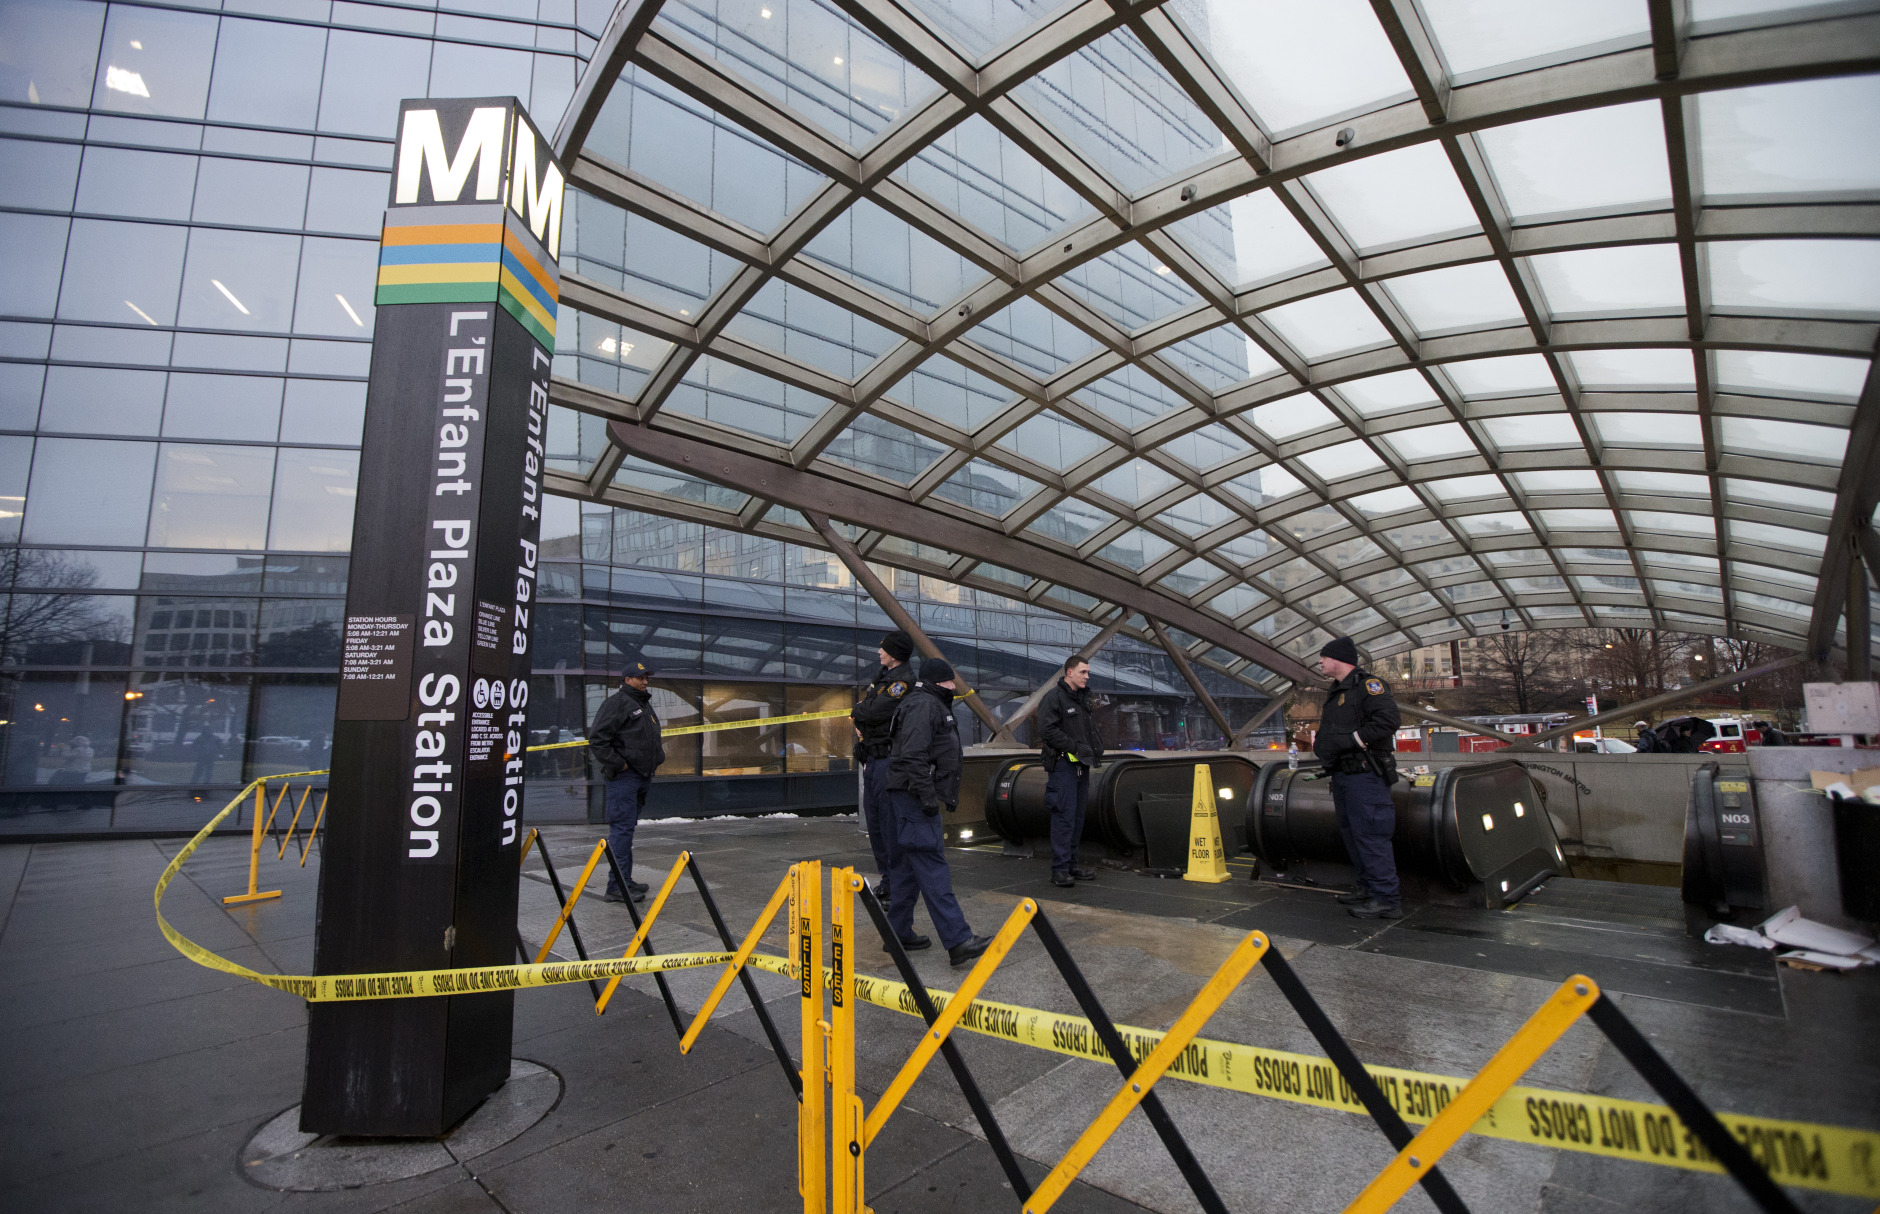 Metro Transit Police officers, secure the entrance to L'Enfant Plaza Station in Washington, Monday, Jan. 12, 2015. Metro officials say one of the busiest stations in downtown Washington has been evacuated because of smoke. (AP Photo/Manuel Balce Ceneta)